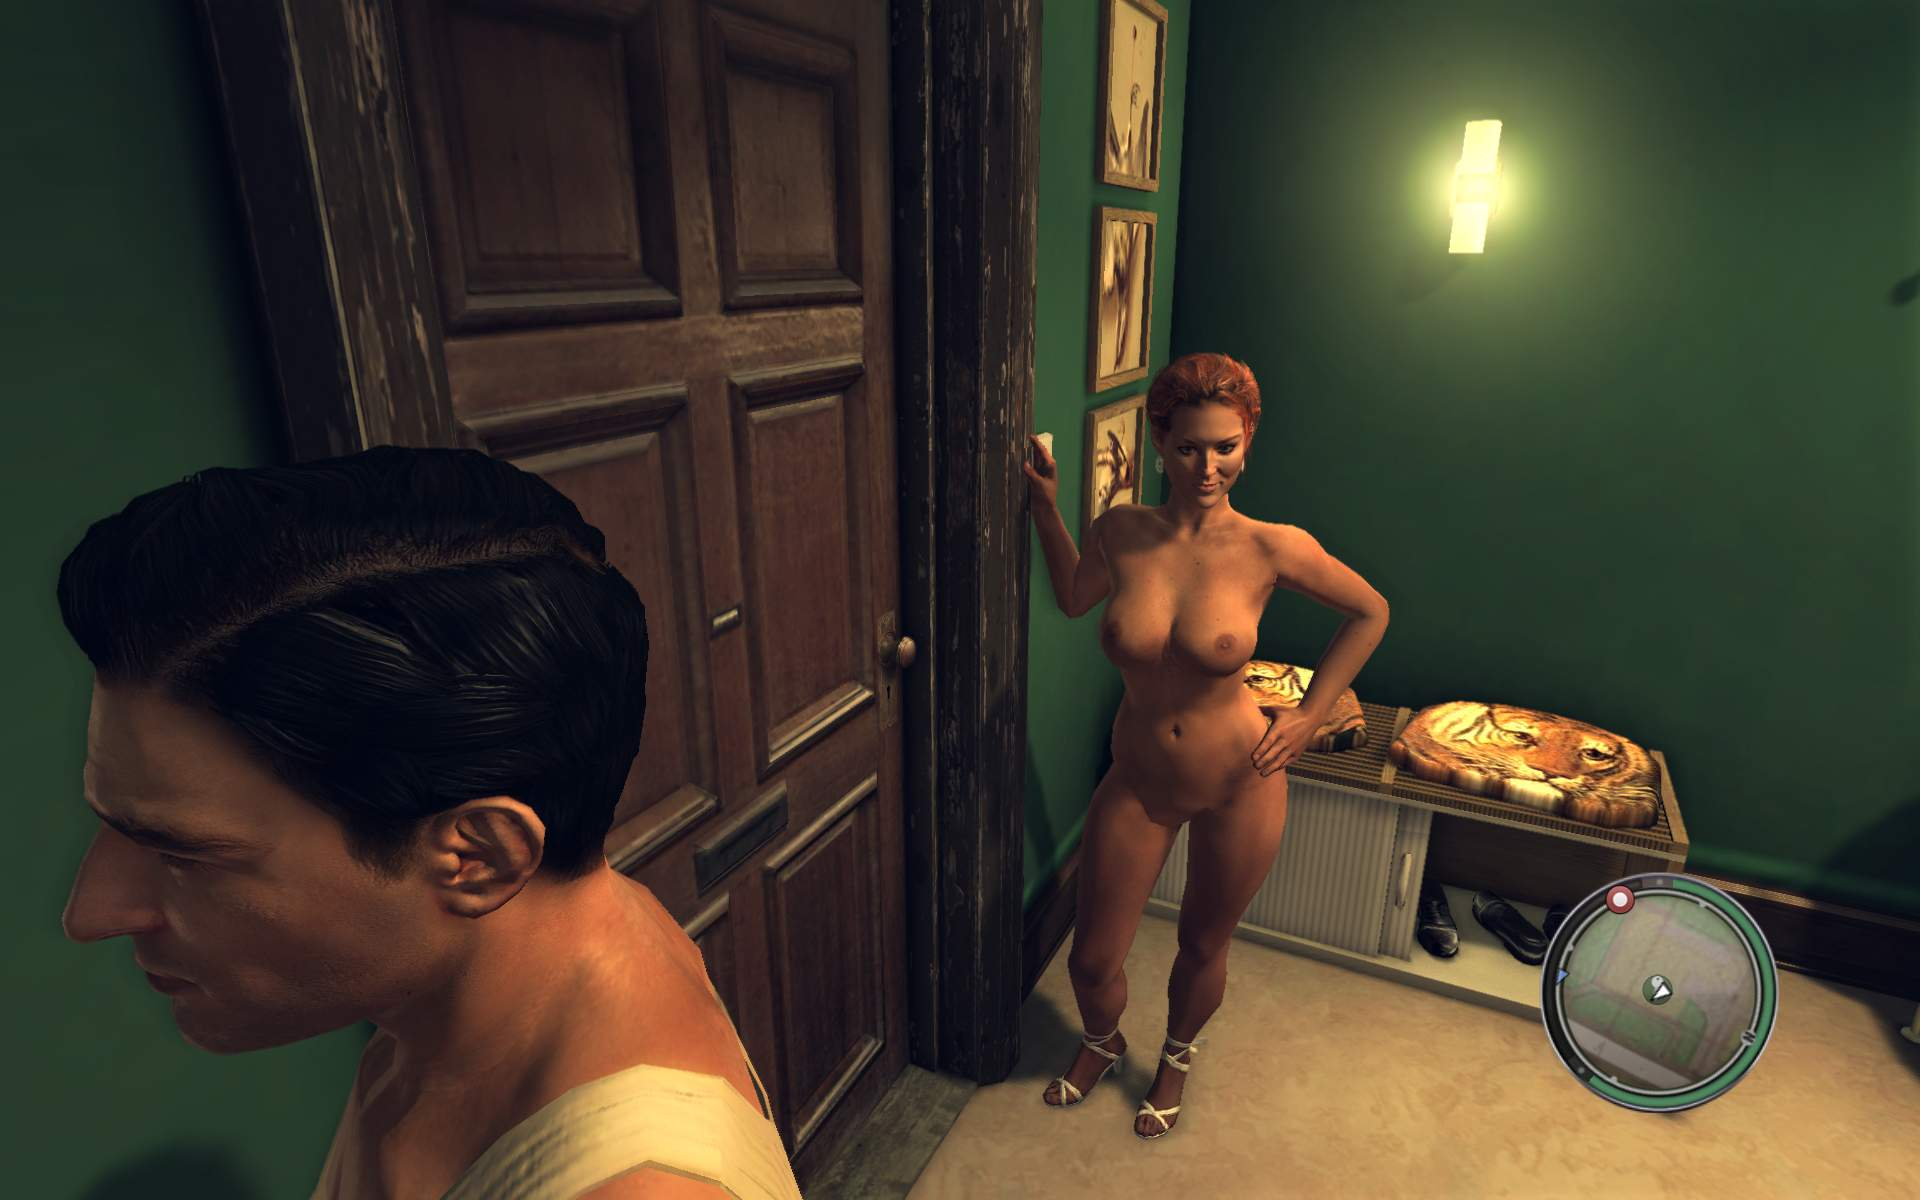 Playboy pc game nude mods fucks video